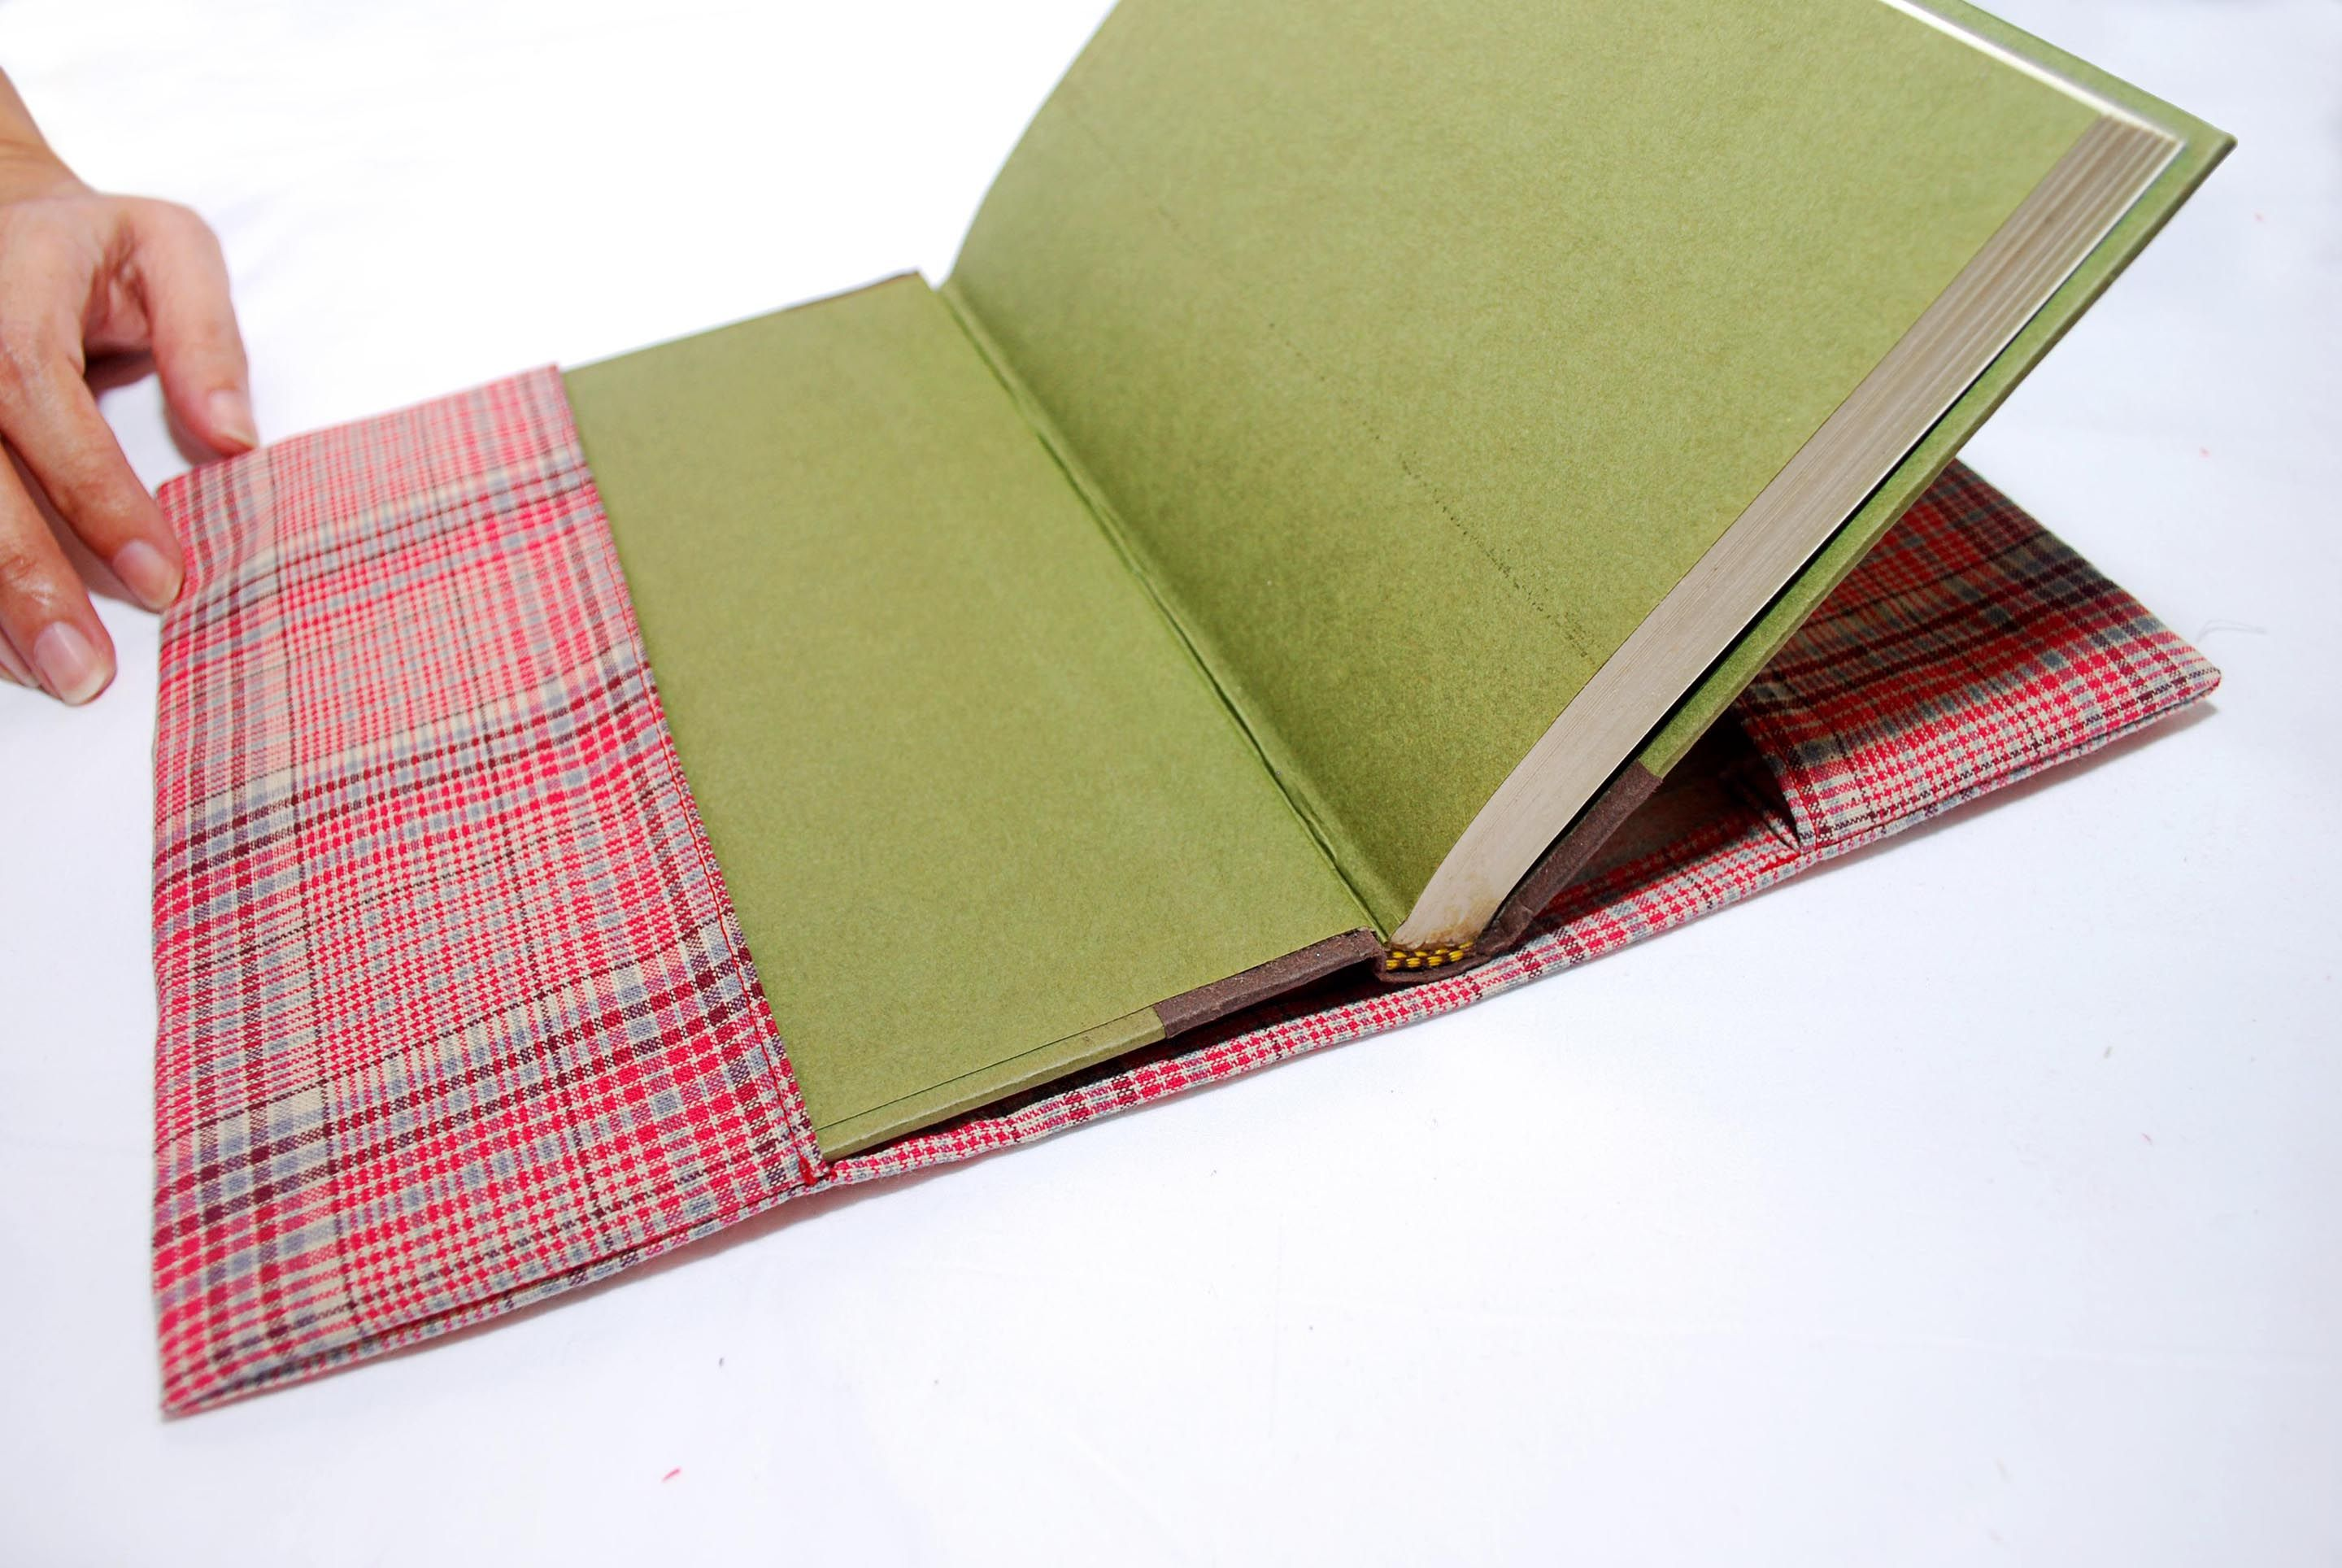 Sew a Fabric Book Cover Fabric book covers, Book quilt